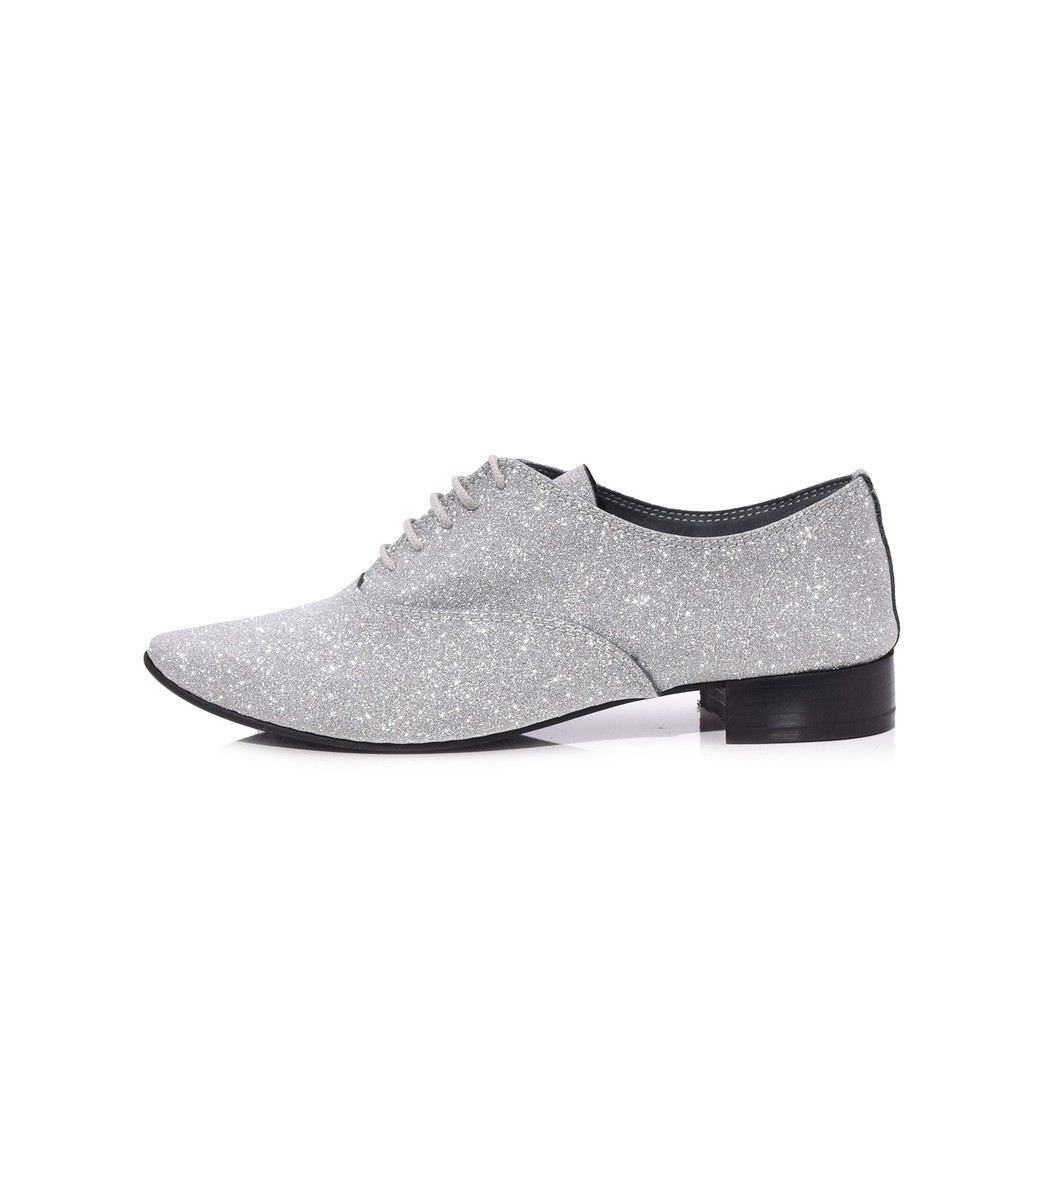 Repetto Black Argent Charlotte Oxford Shoes